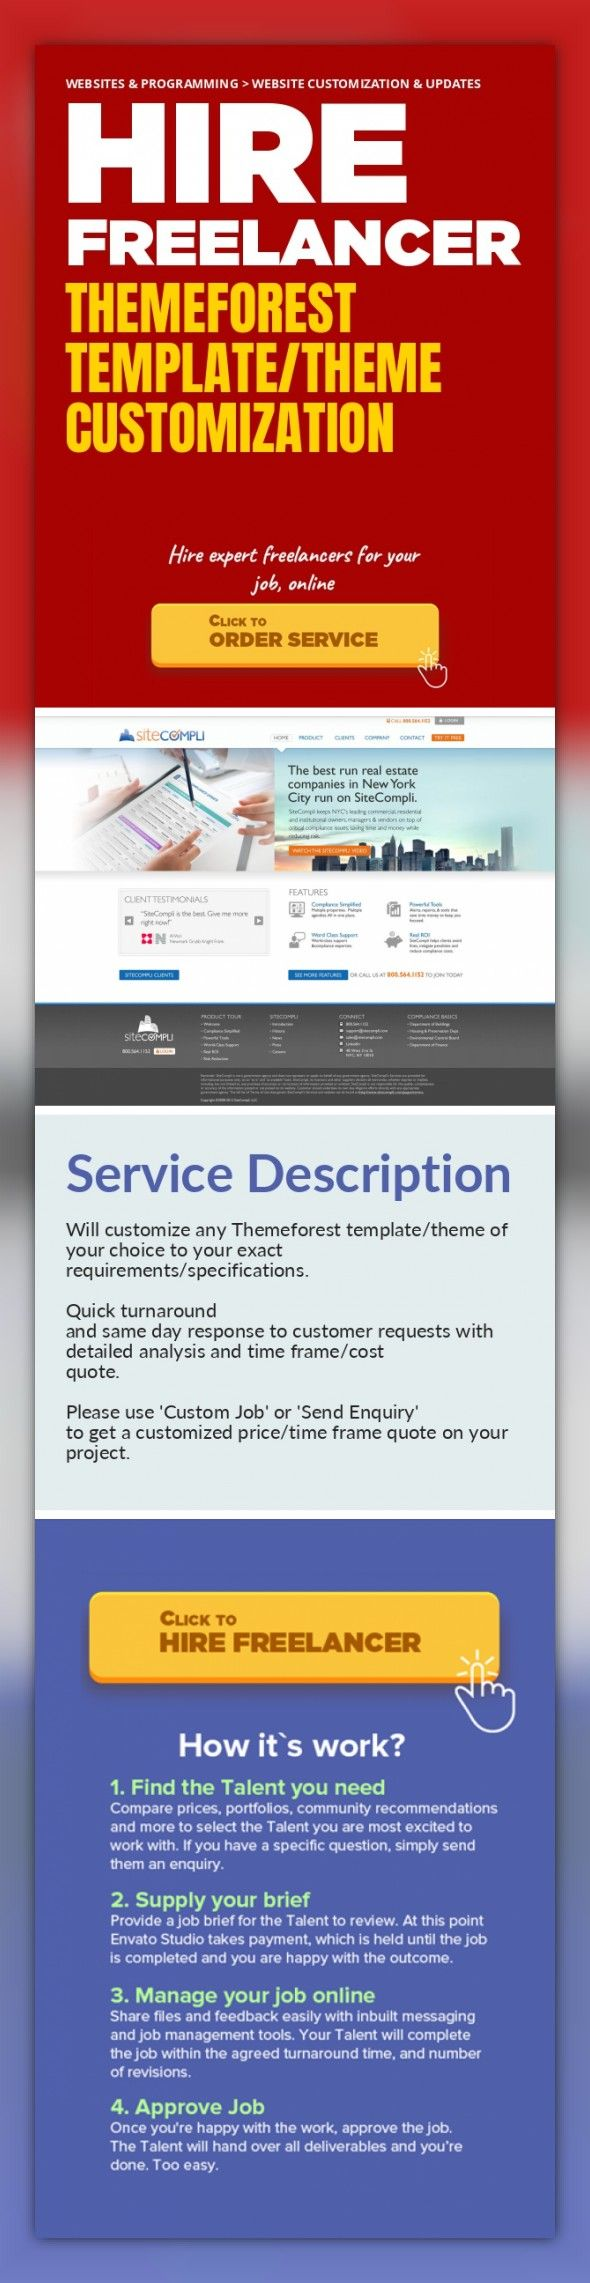 Themeforest Template/Theme Customization Websites & Programming, Website Customization & Updates   Will customize any Themeforest template/theme of your choice to your exact requirements/specifications.     Quick turnaround and same day response to customer requests with detailed analysis and time frame/cost quote.    Please use 'Custom Job' or 'Send Enquiry' to get a customized price/time frame q...